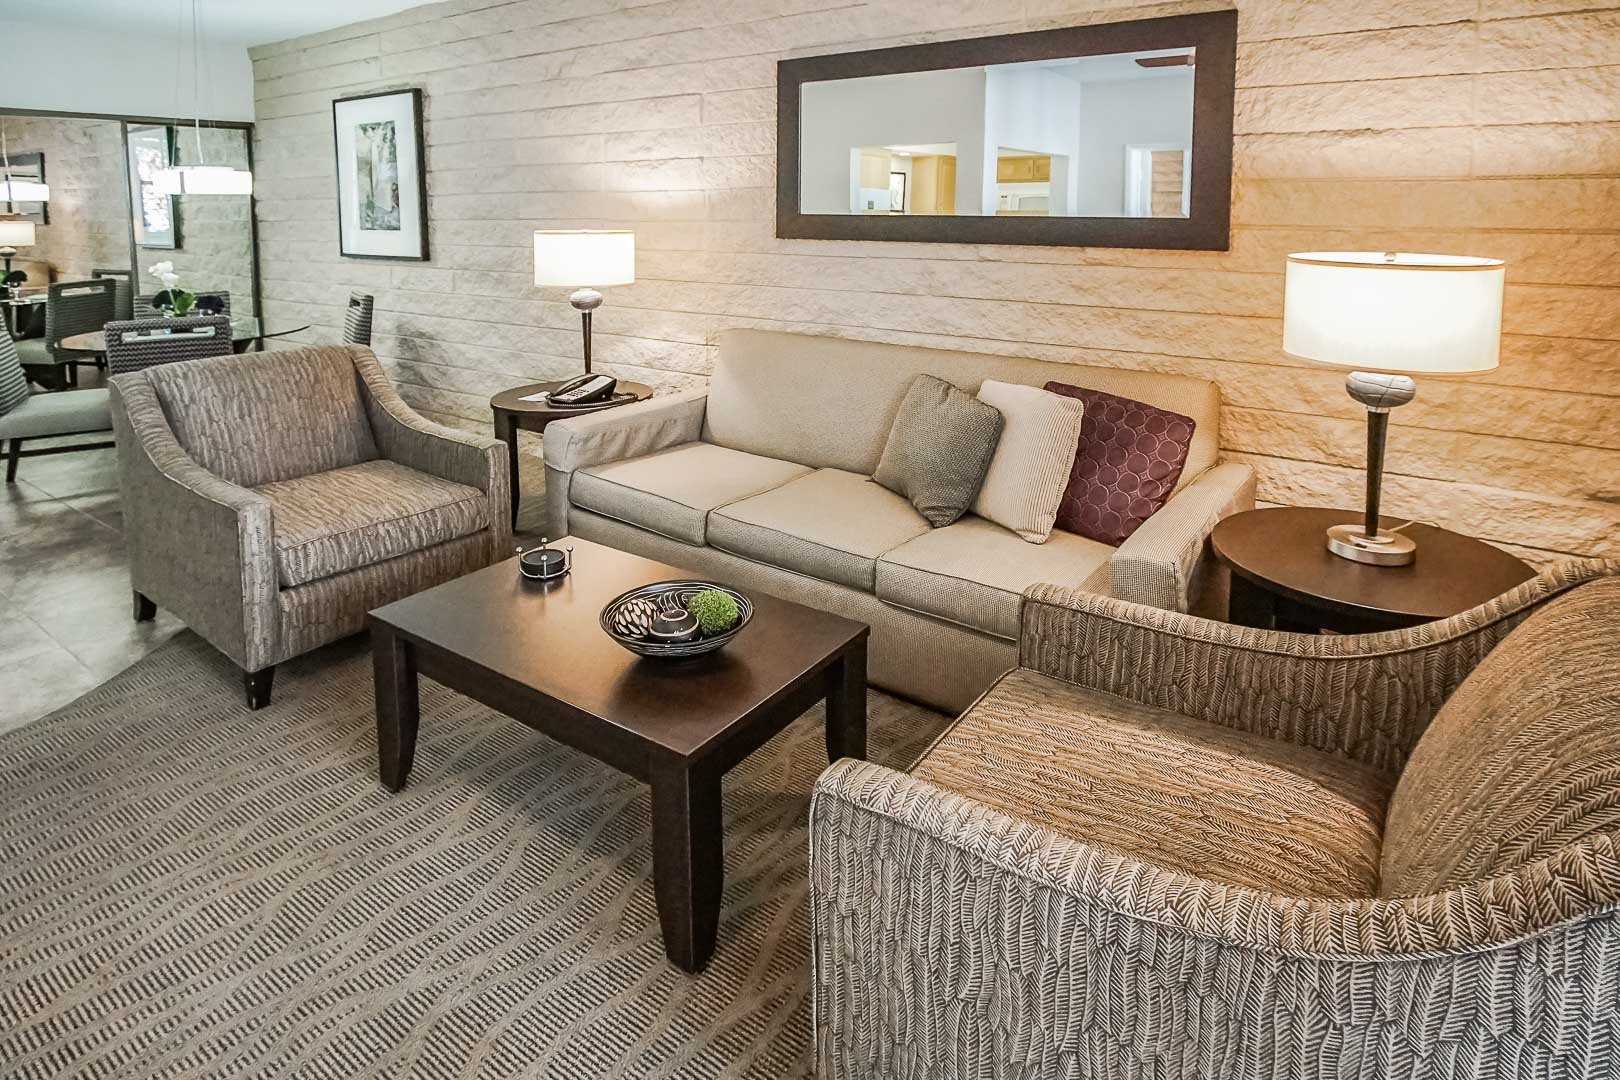 A modern living room area at VRI's Palm Springs Tennis Club in California.